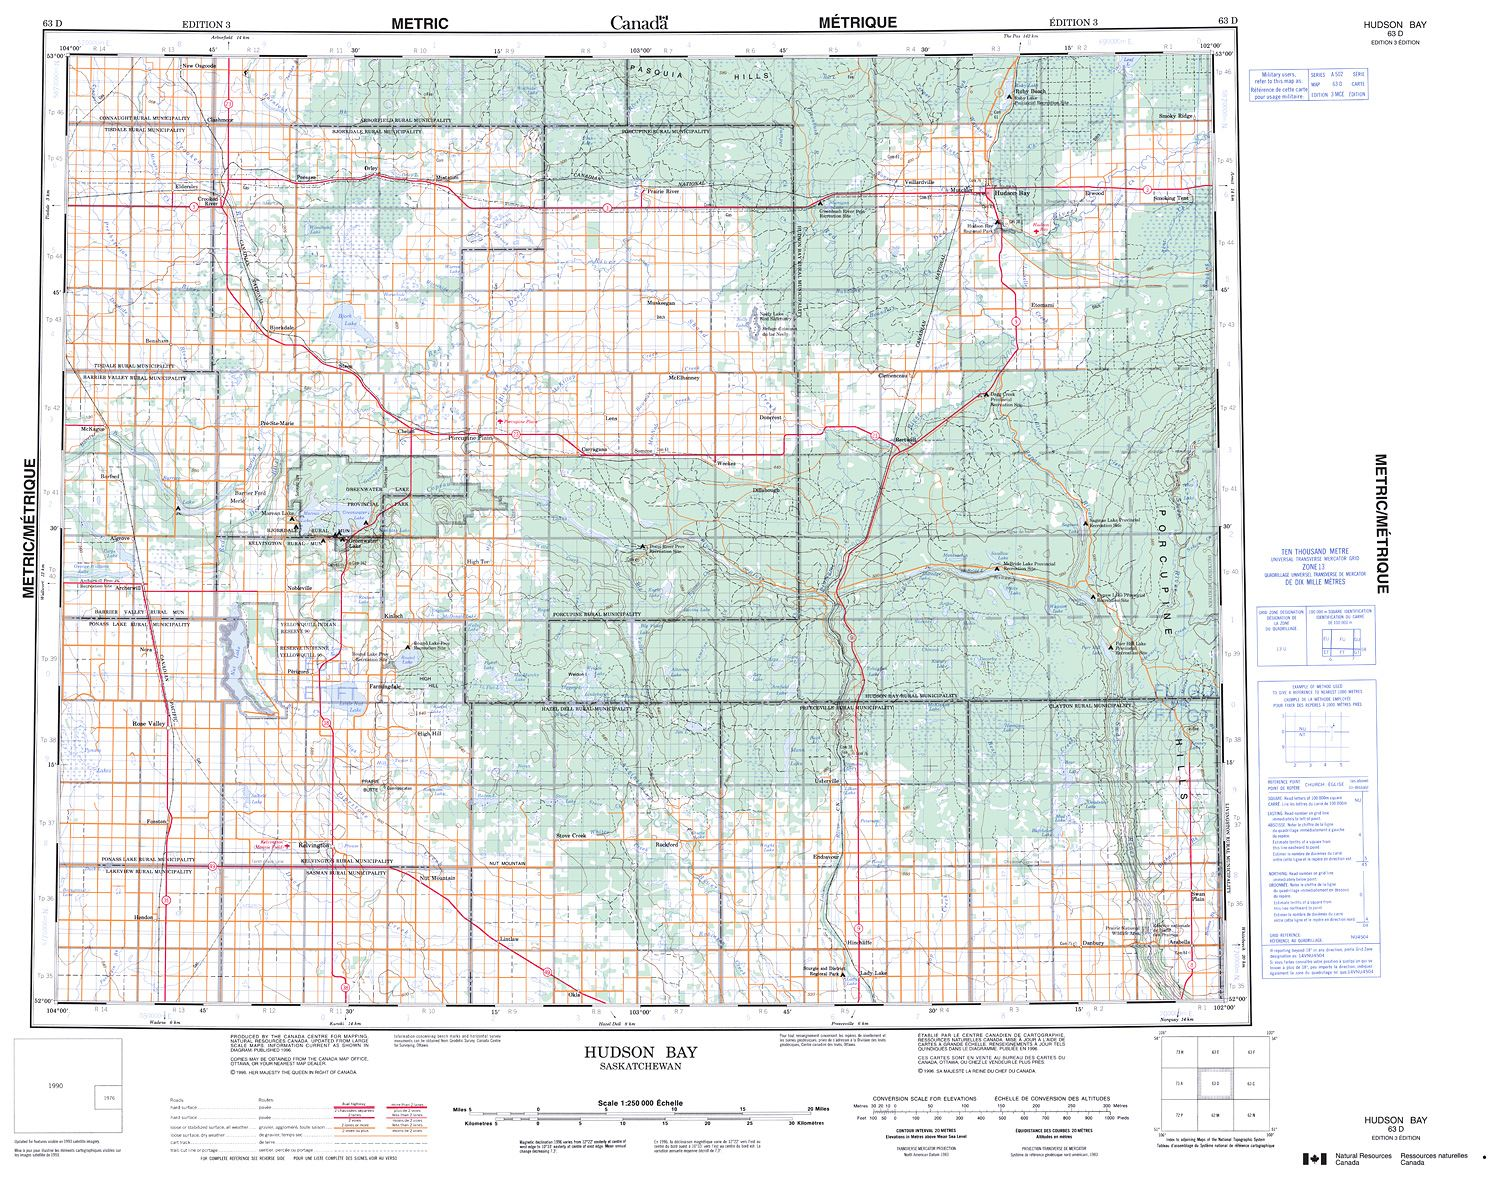 063D - HUDSON BAY - Topographic Map